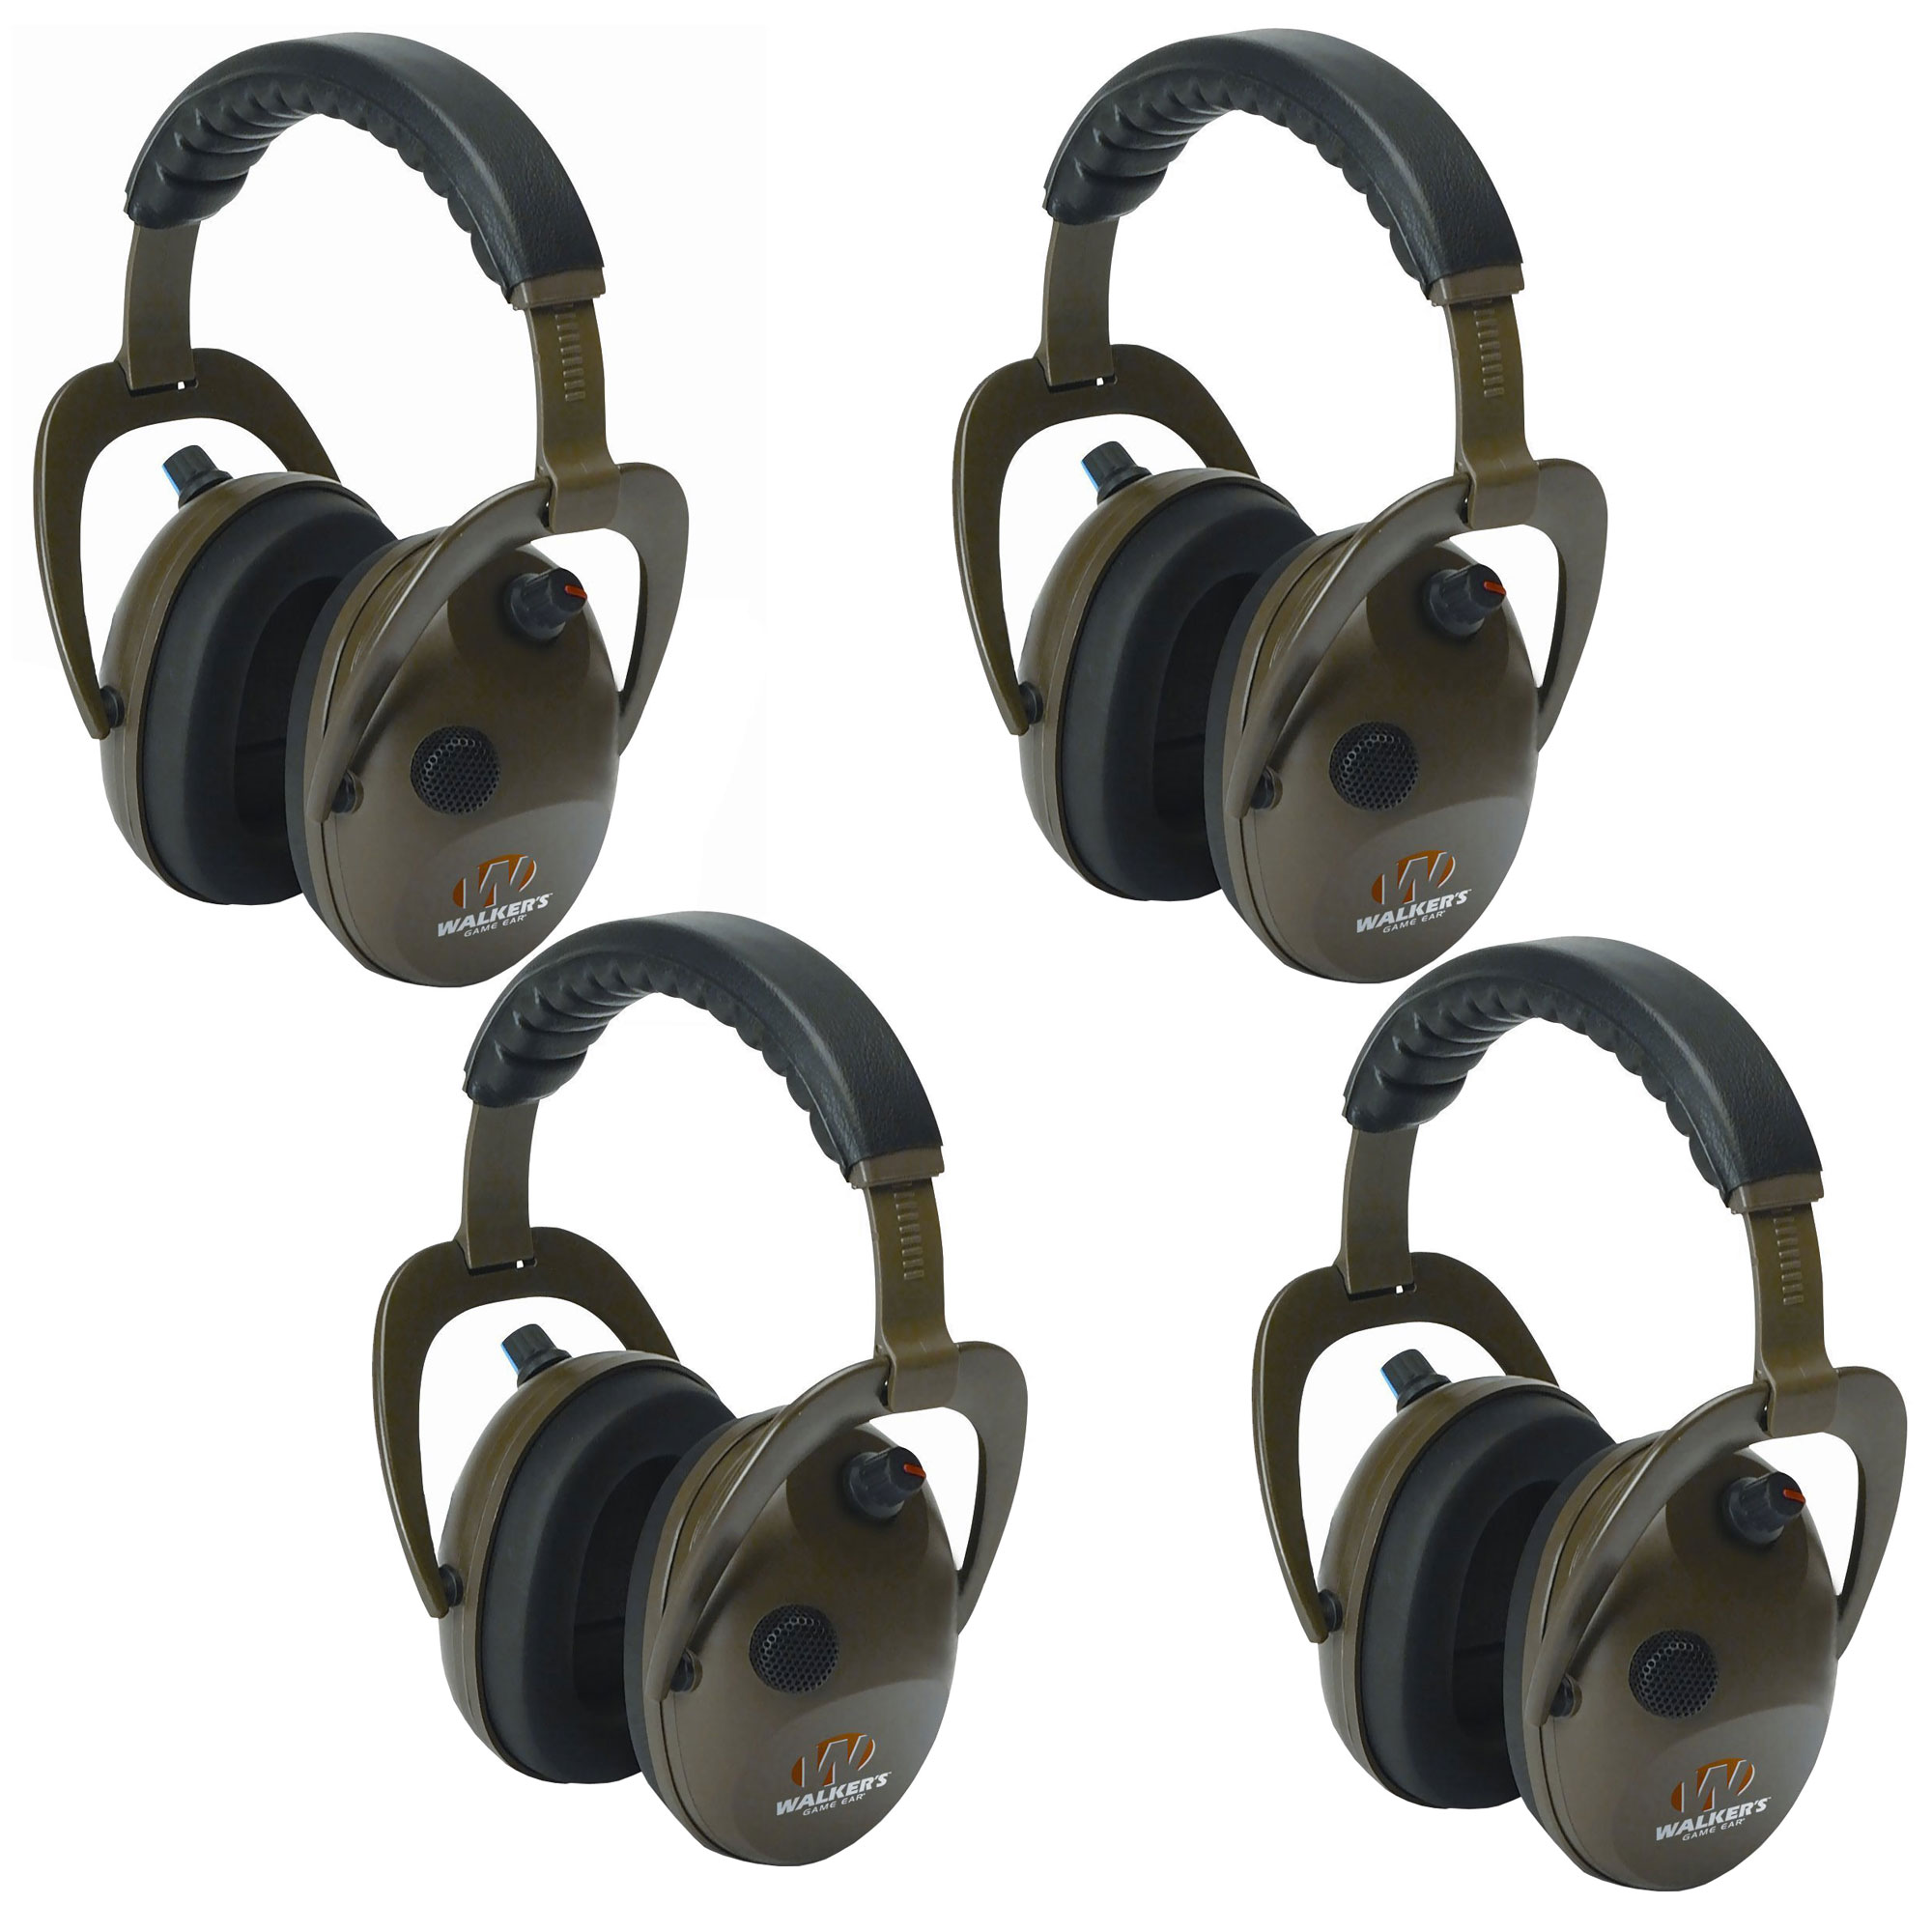 Walker's Game Ear Compact Noise Reducing & Isolating Alph...